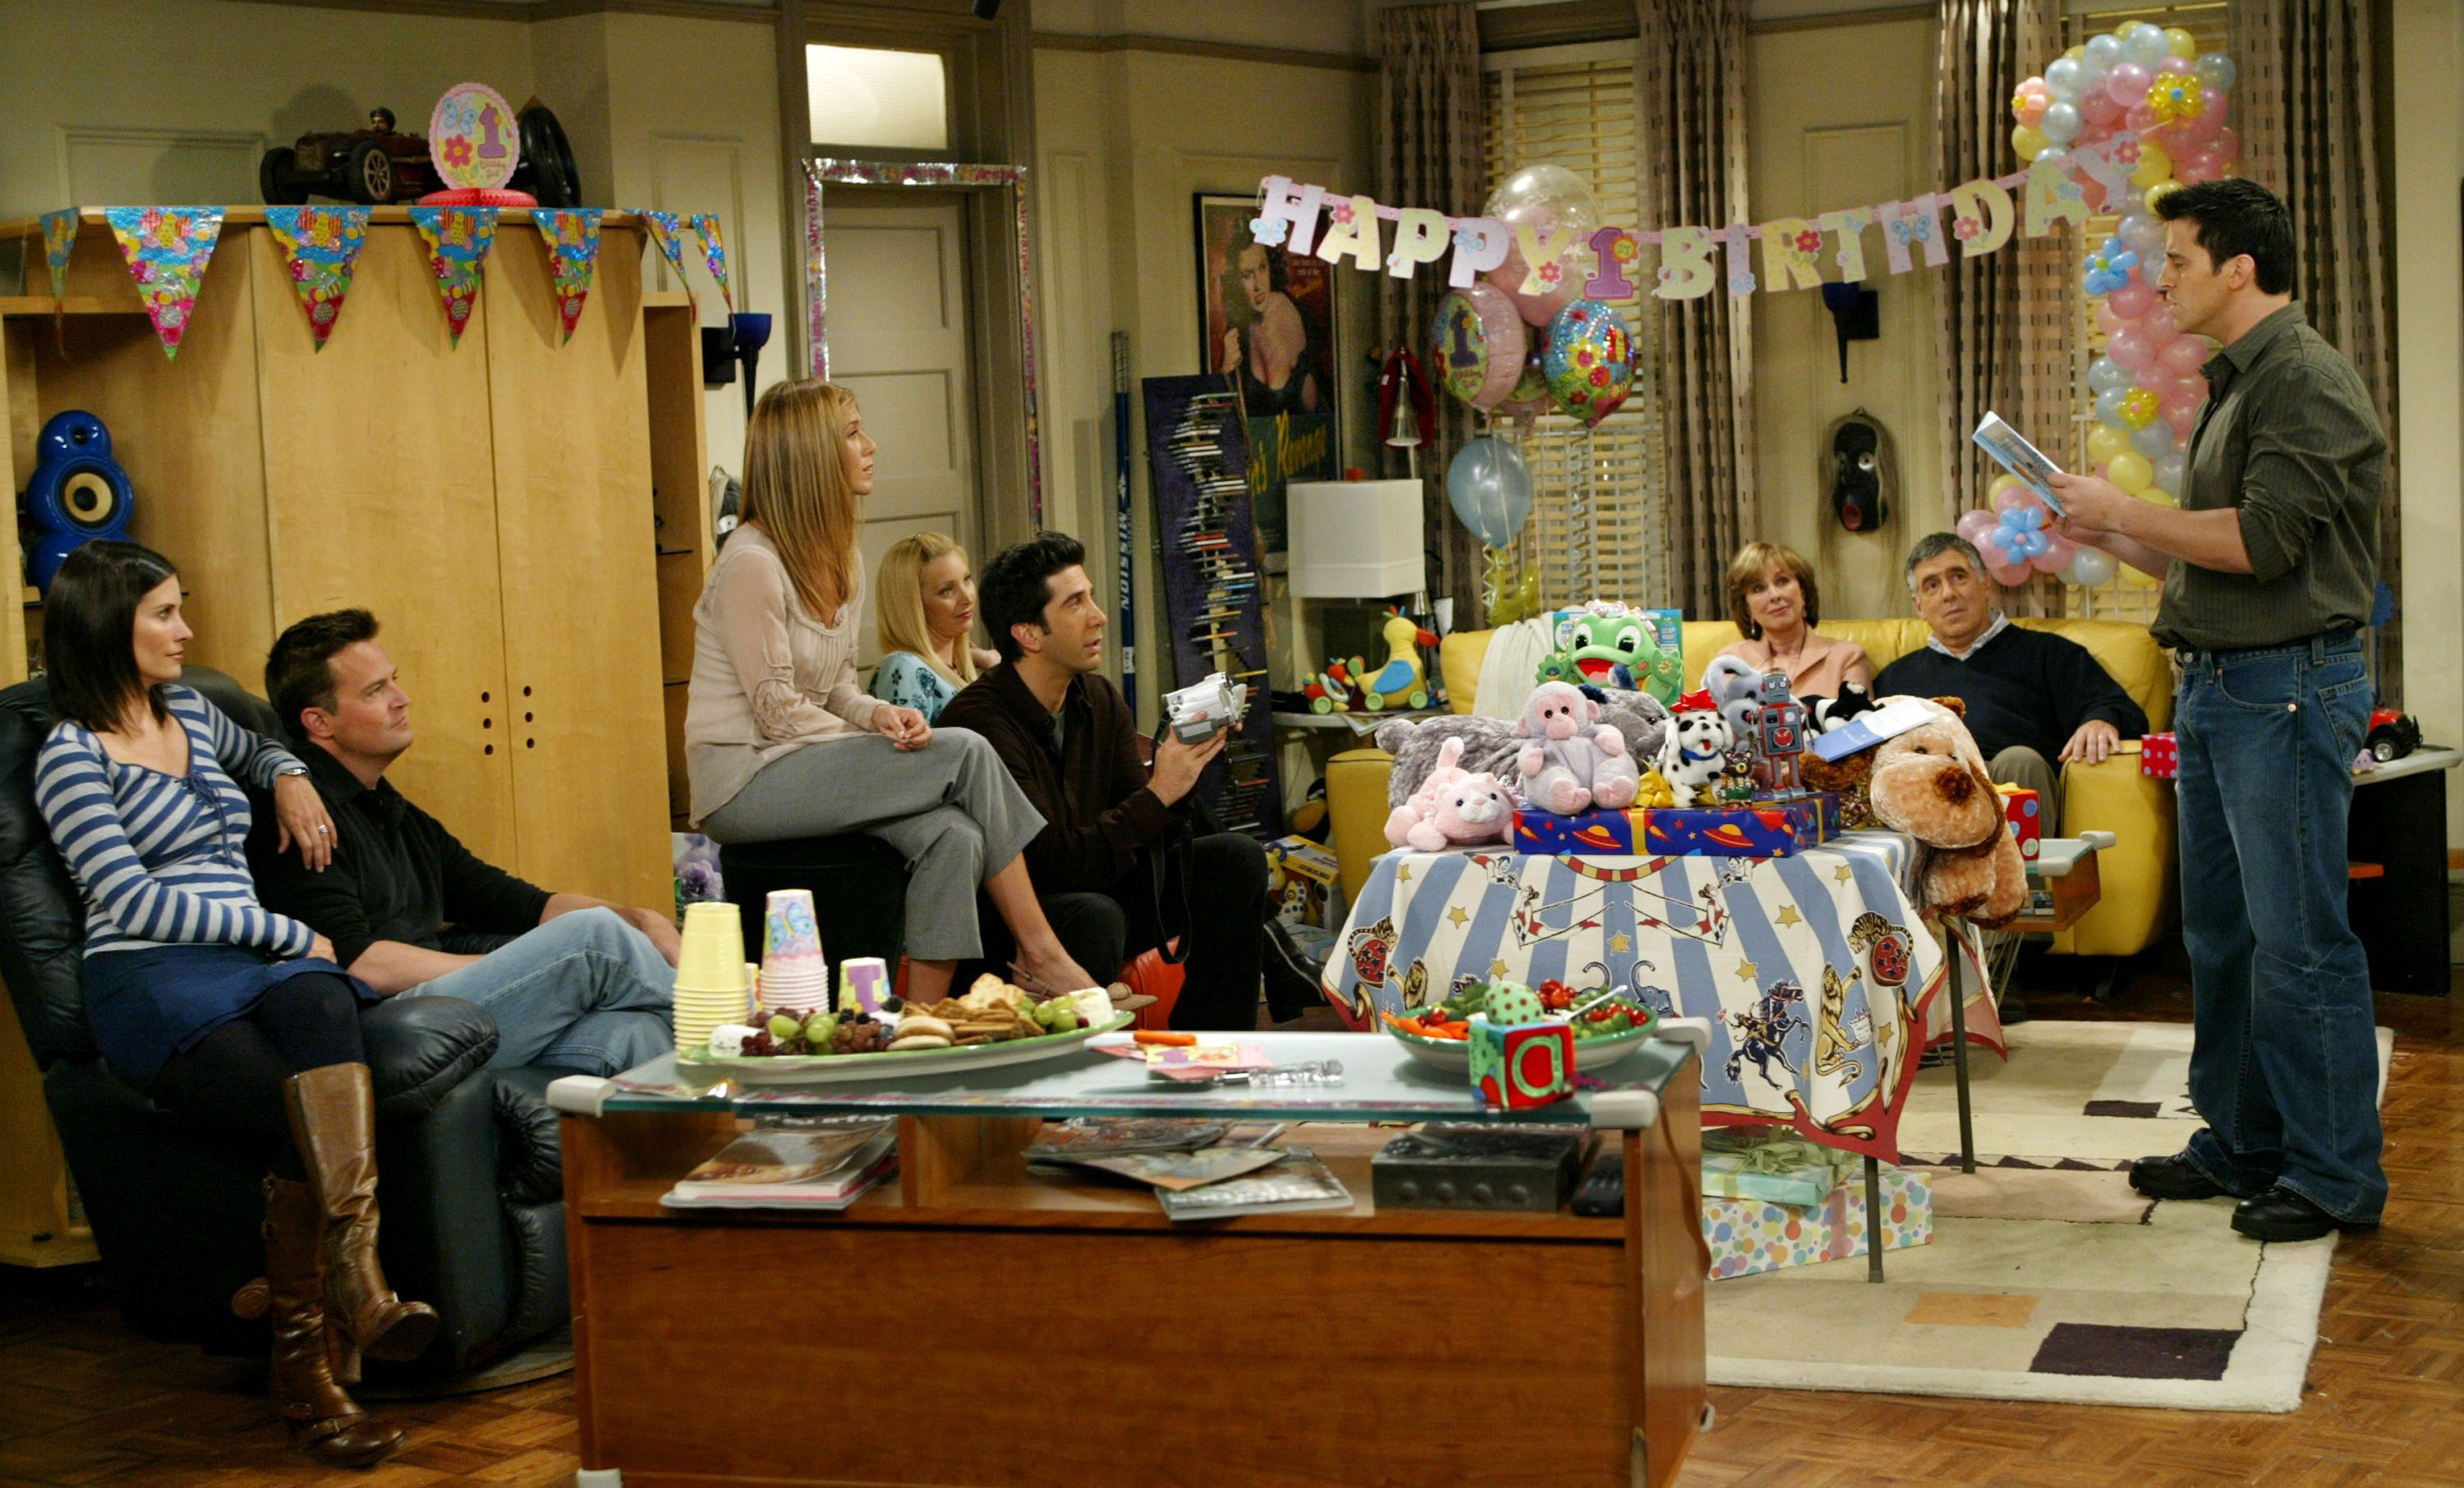 Chandler Bing's apartment FRIENDS